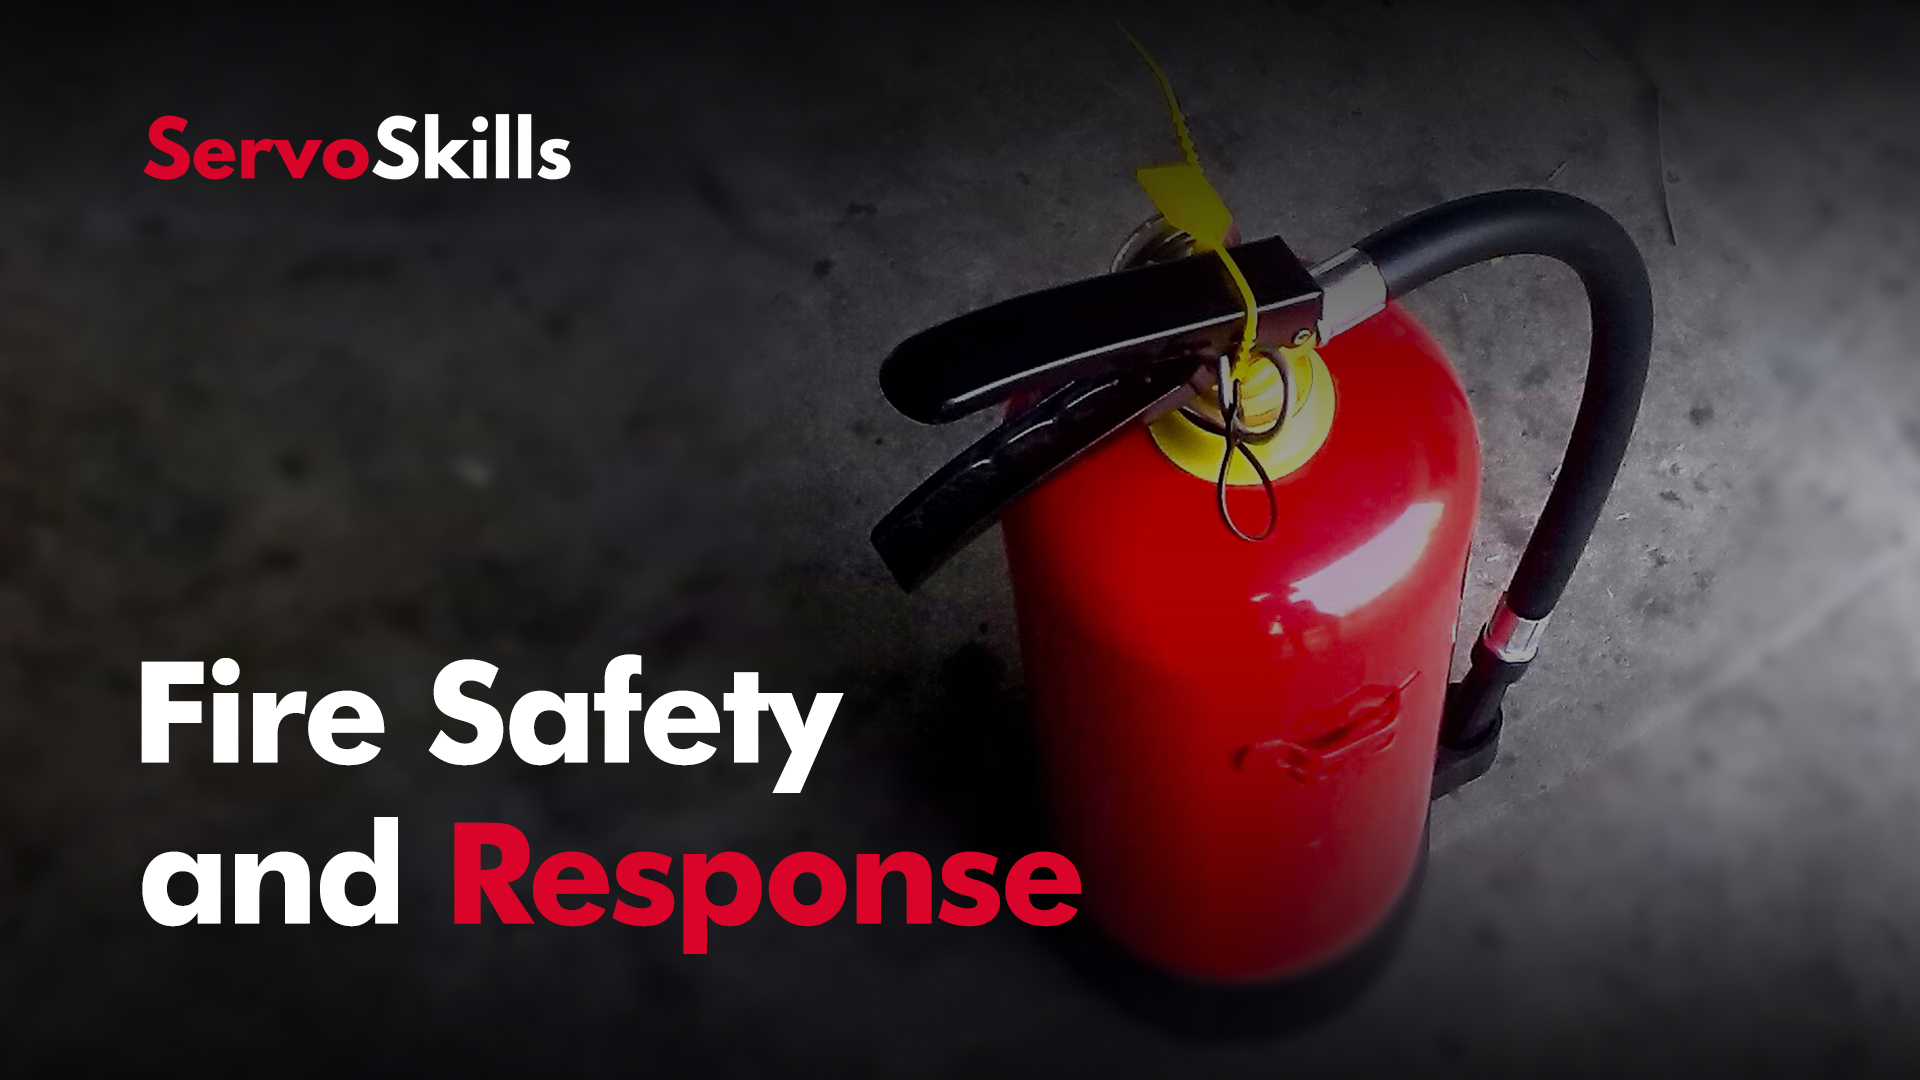 Fire Safety and Response